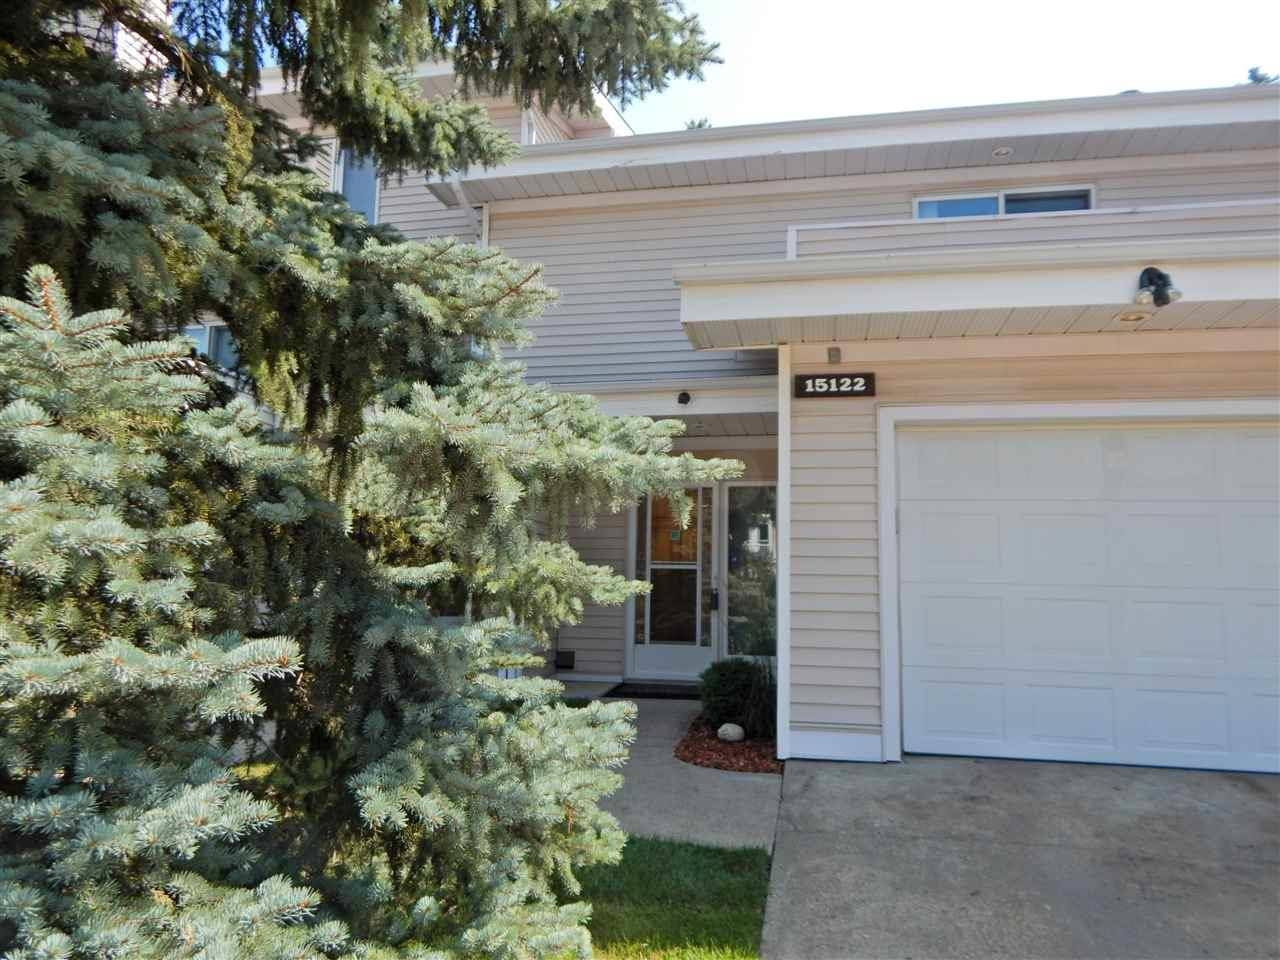 Townhouse for sale at 15122 45 Ave Nw Edmonton Alberta - MLS: E4185378